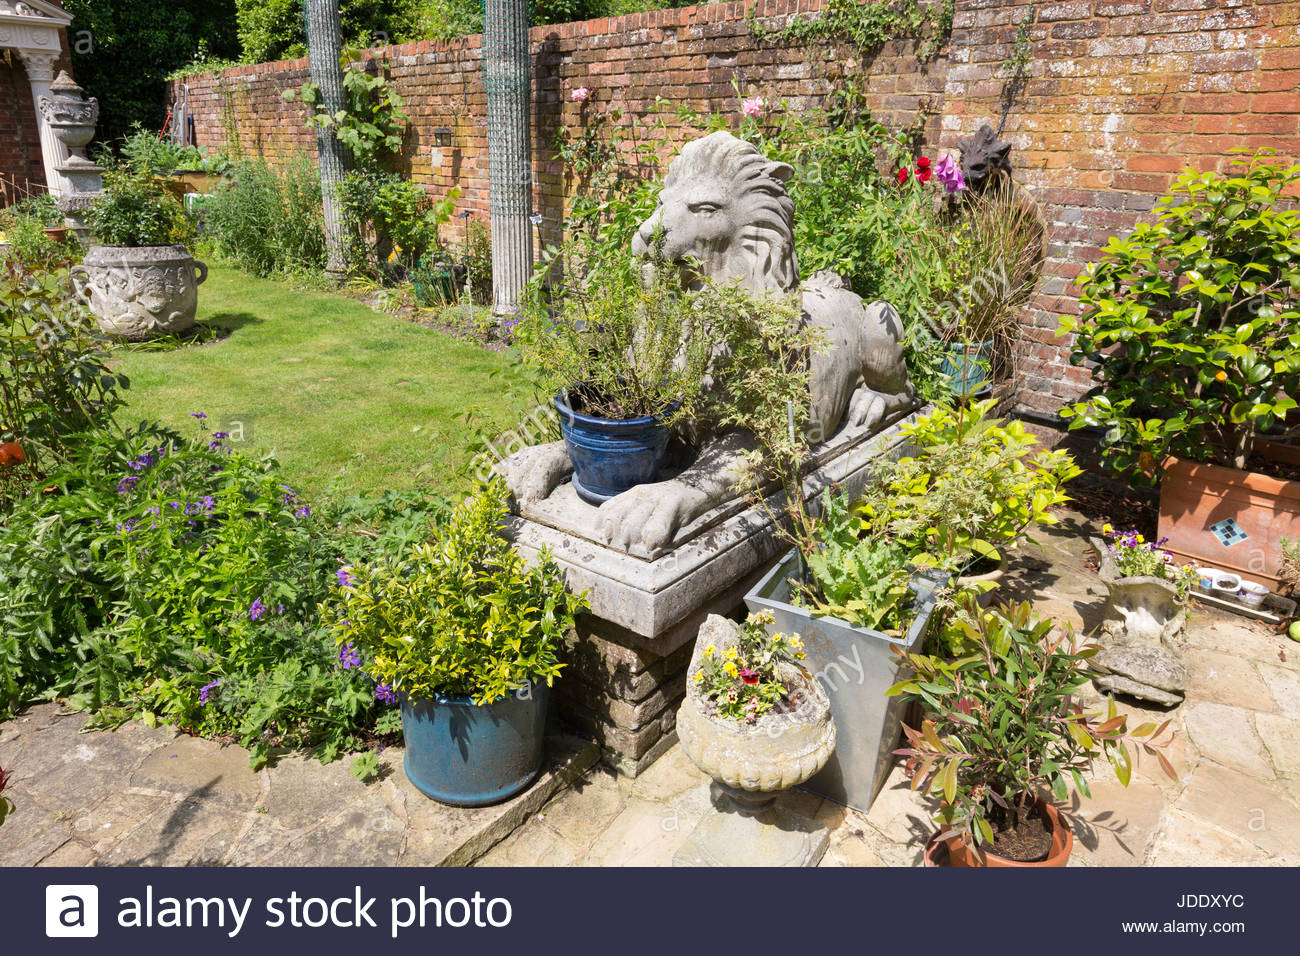 Large garden ornaments including lion statues and pots in an ornate english  garden, Kent England UK